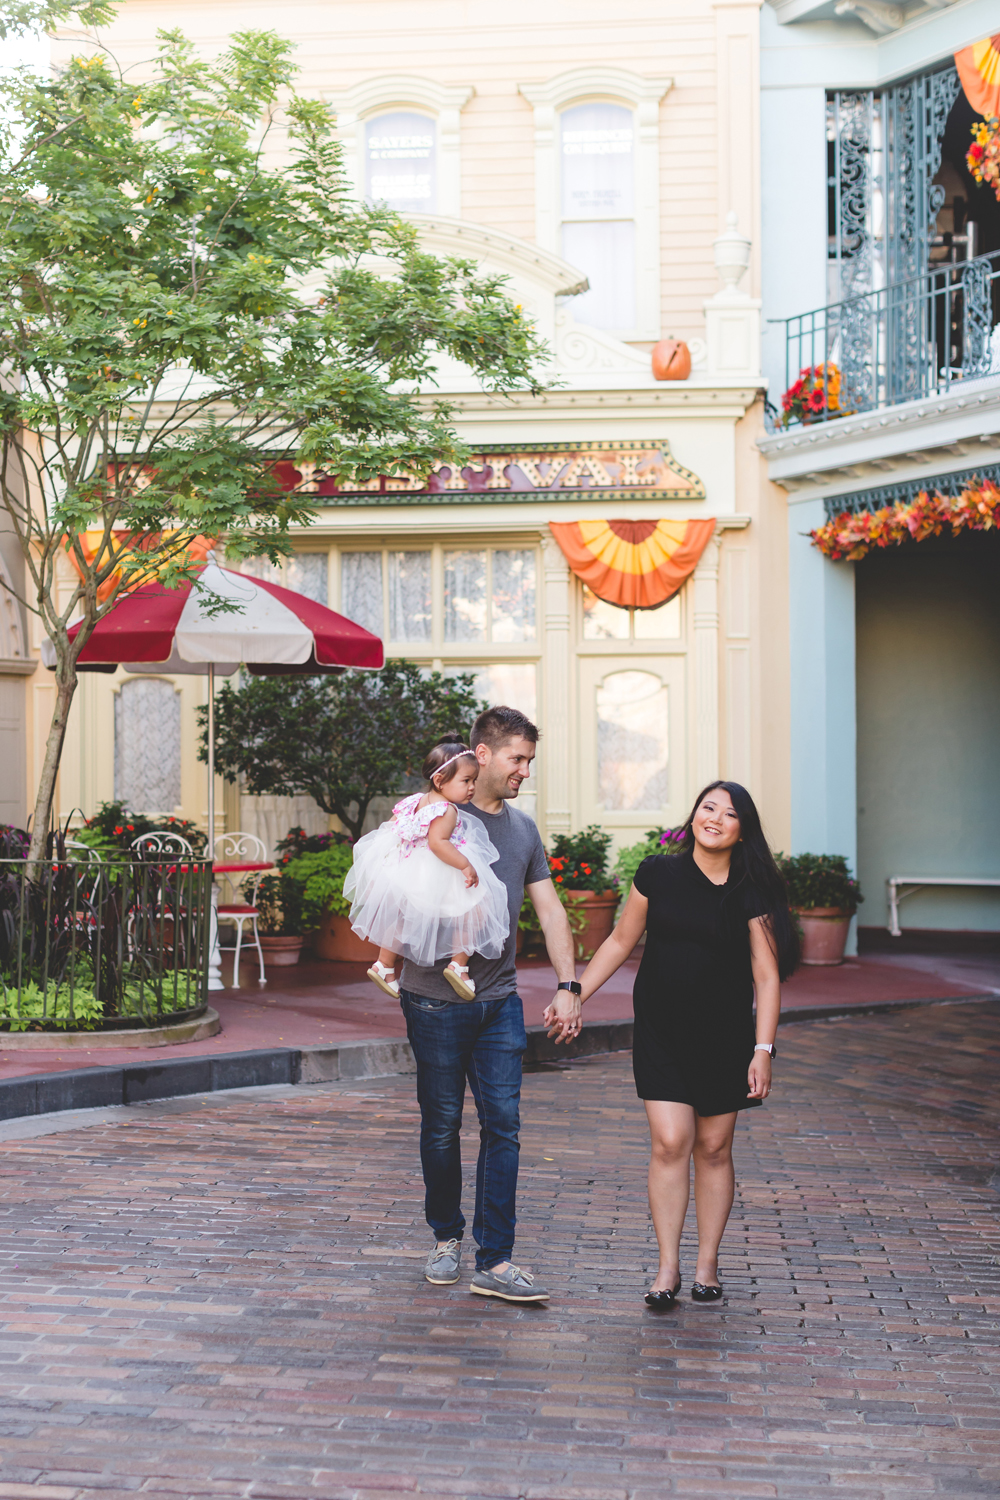 Jaime DiOrio - Disney Family Session - Orlando Family Photographer - Magic Kingdom Family Session - Documentary Photographer (5).jpg